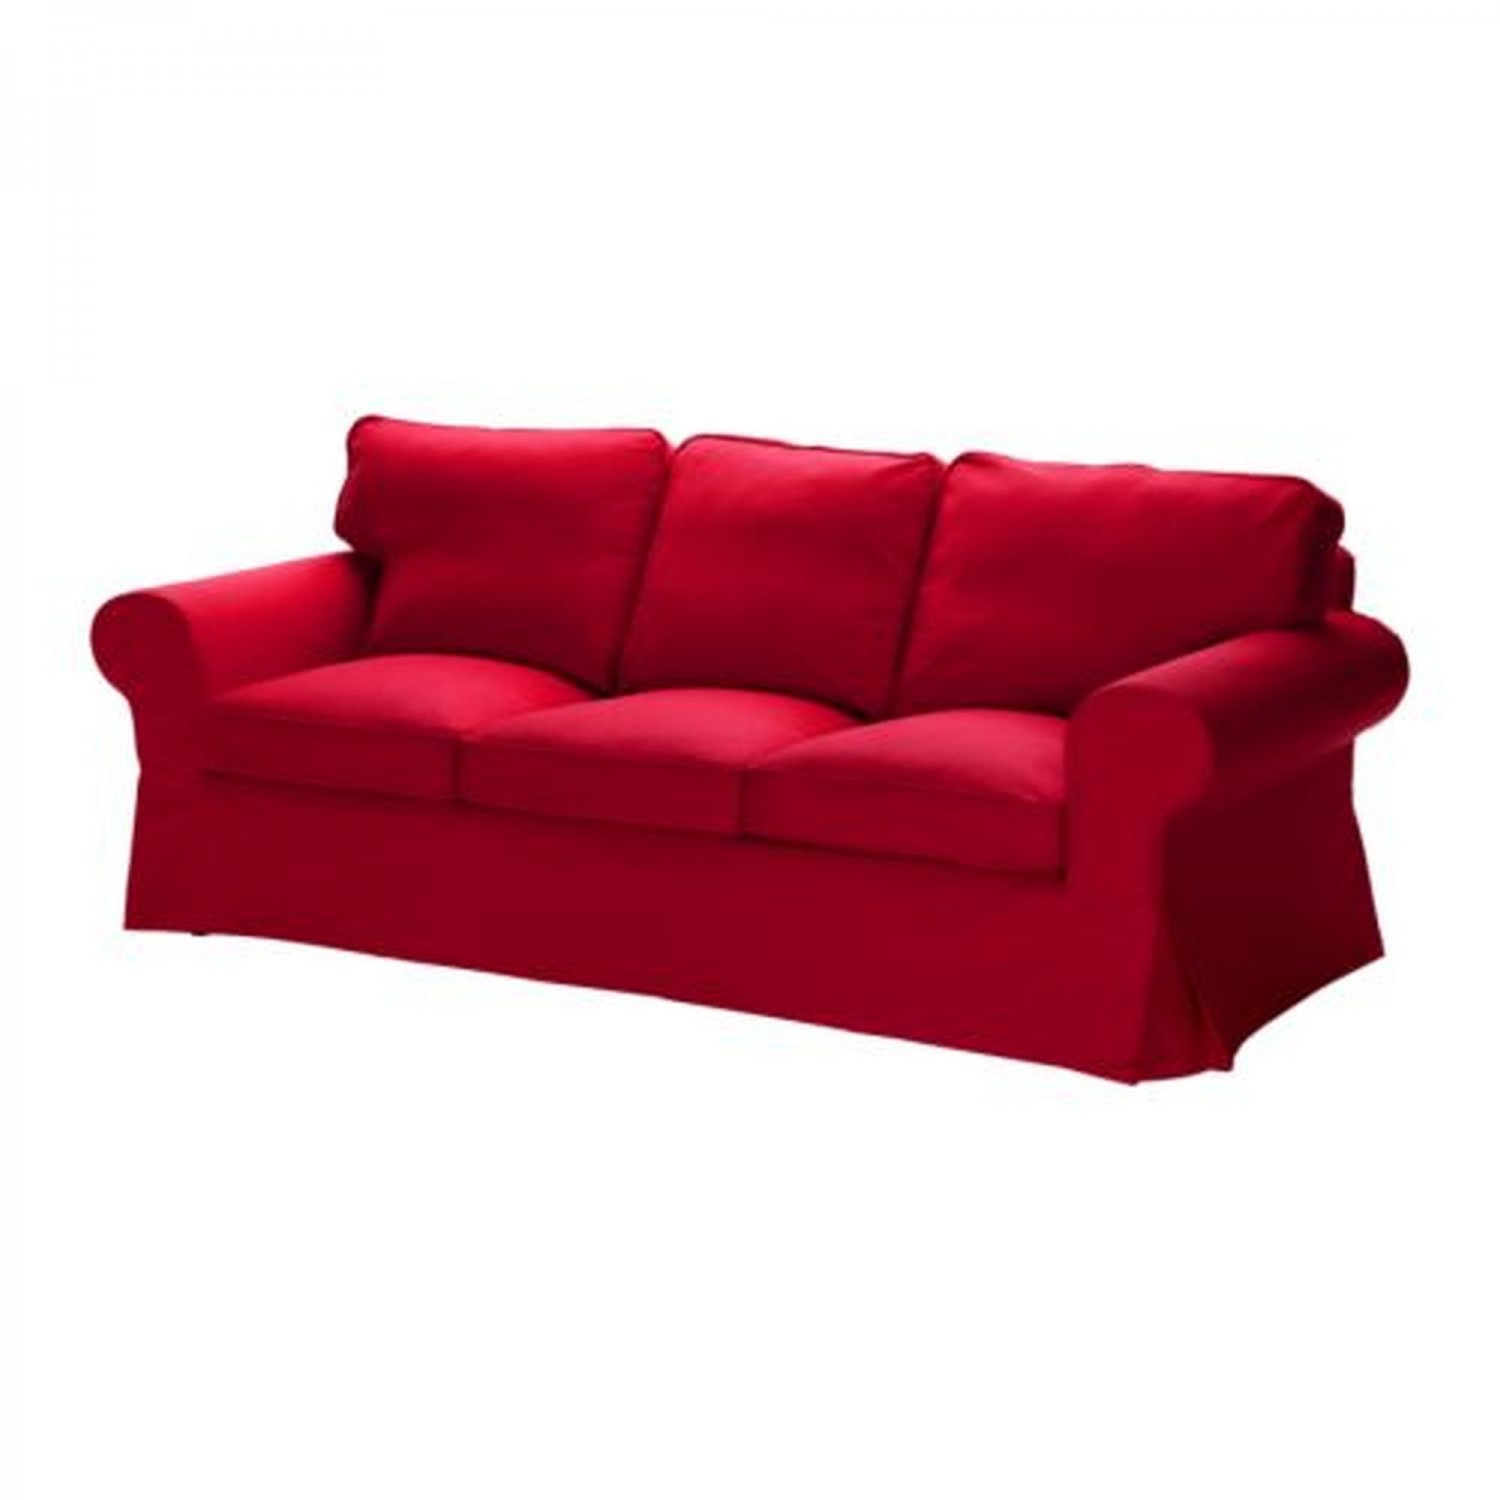 Ikea ektorp 3 seat sofa slipcover cover idemo red for 3 on a couch